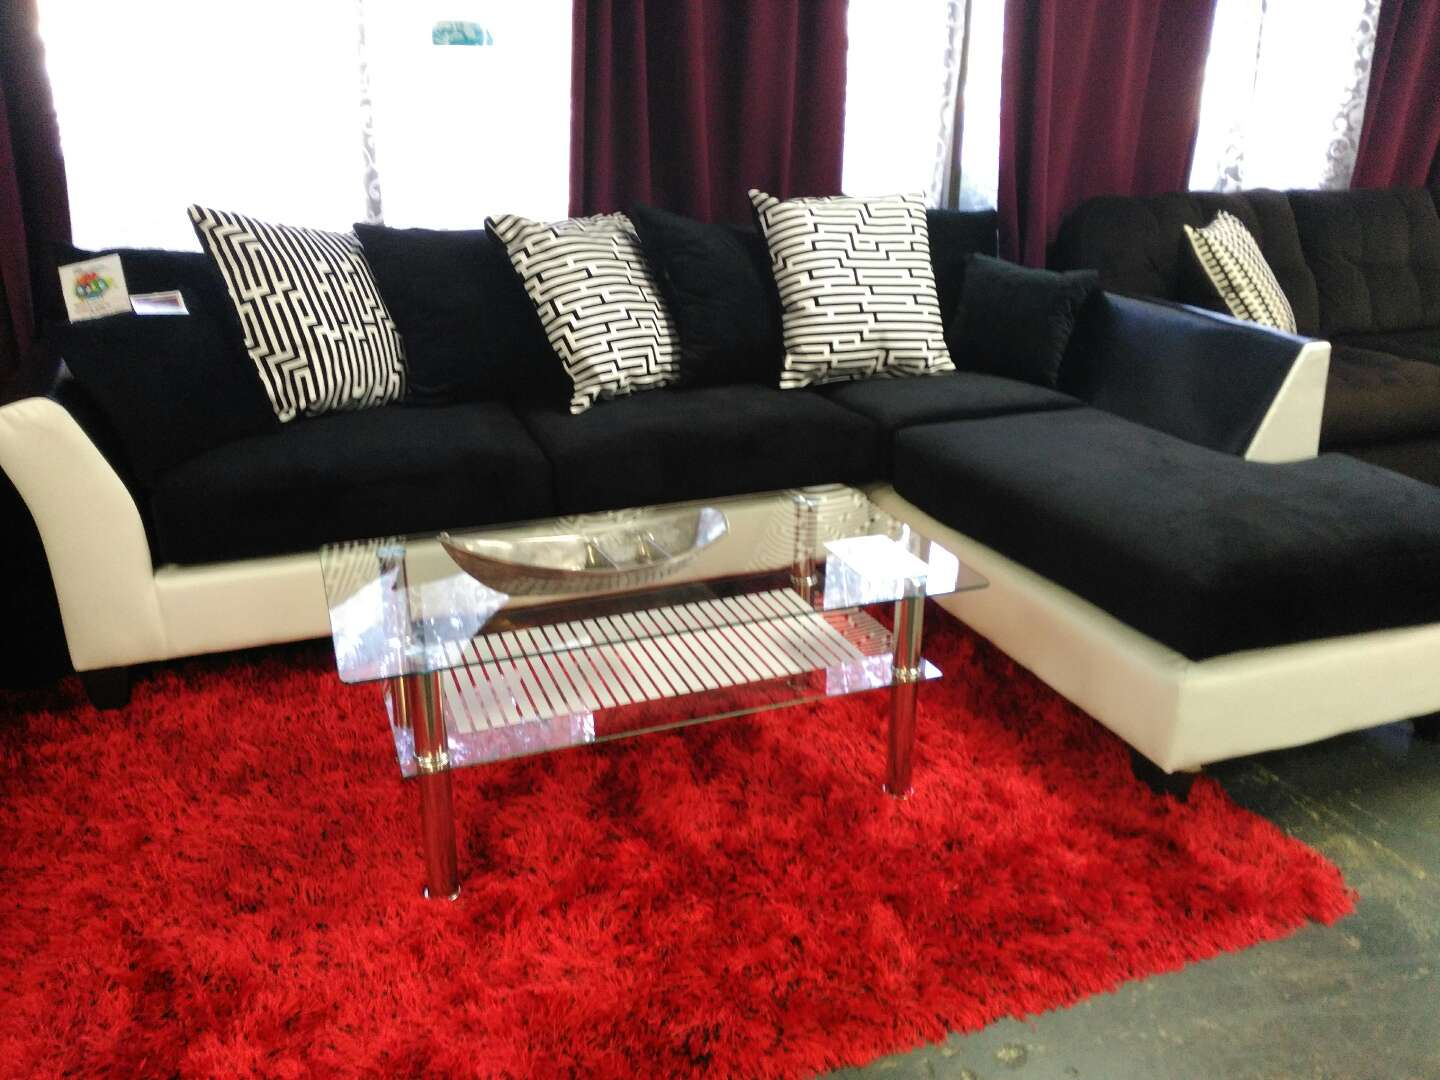 Black White Sectional W Loose Pillows For Sale In Farmers Branch Tx 5miles Buy And Sell